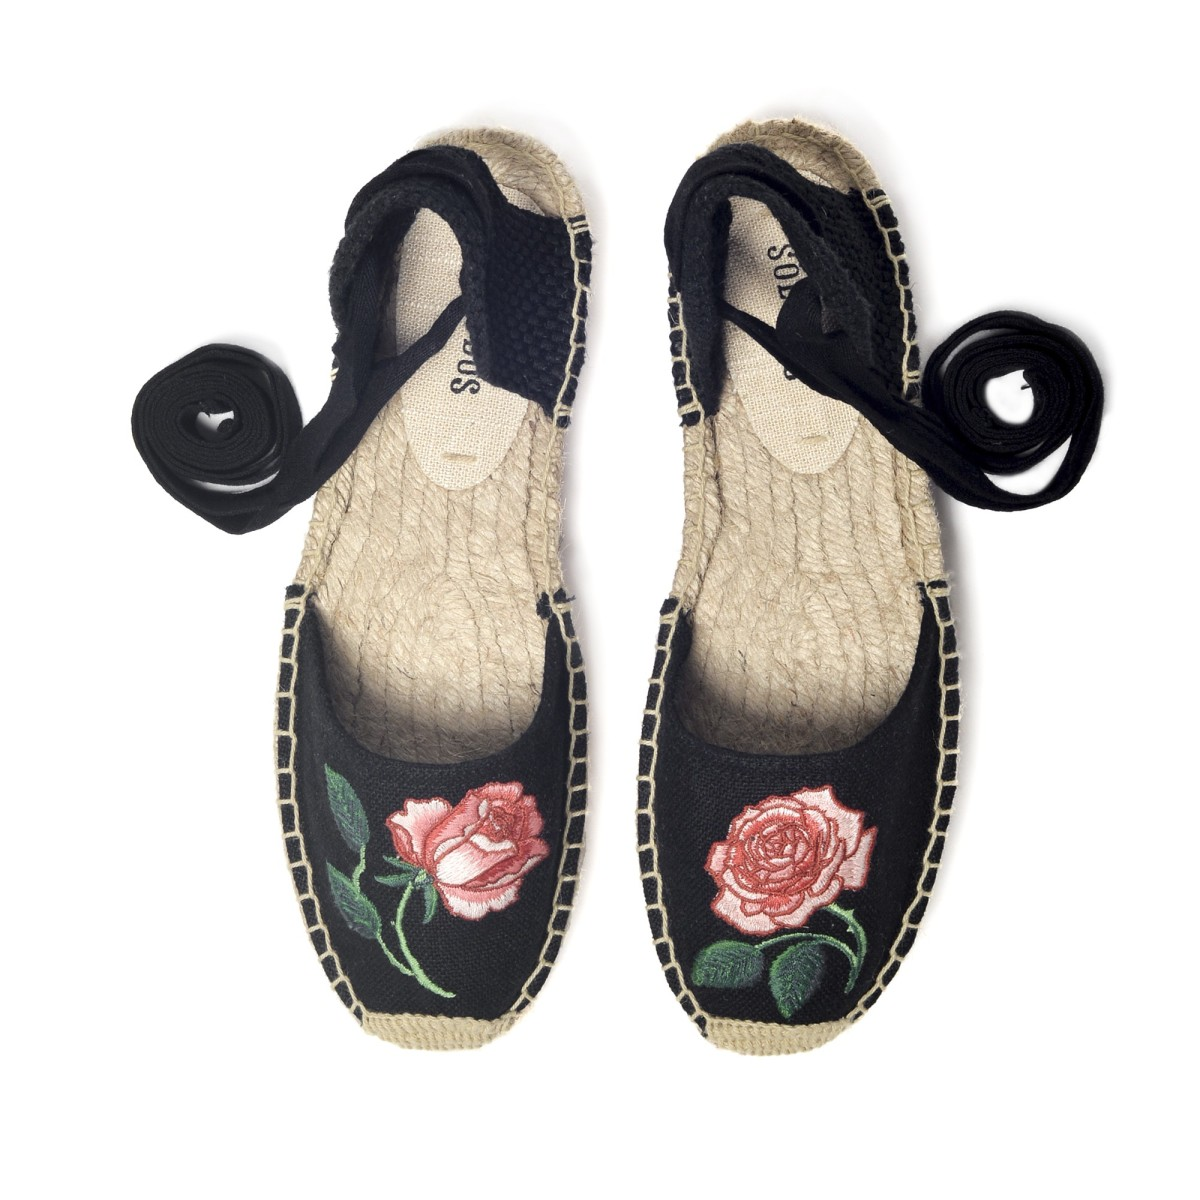 0cd17a333851 Everything Is Coming Up Roses on Tyler s New Shoes - Fashionista